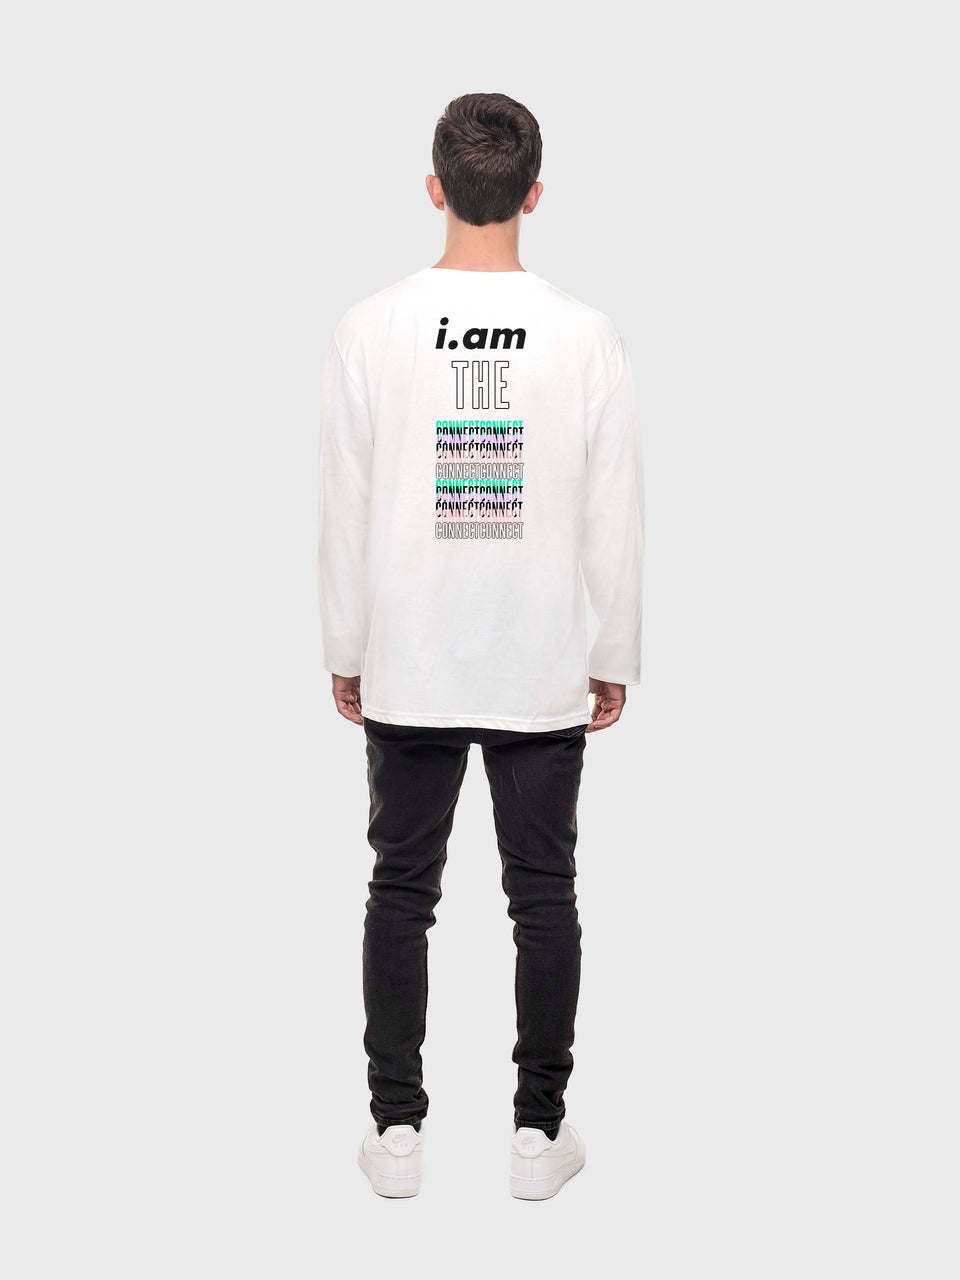 The connect - White - Unisex long sleeve T